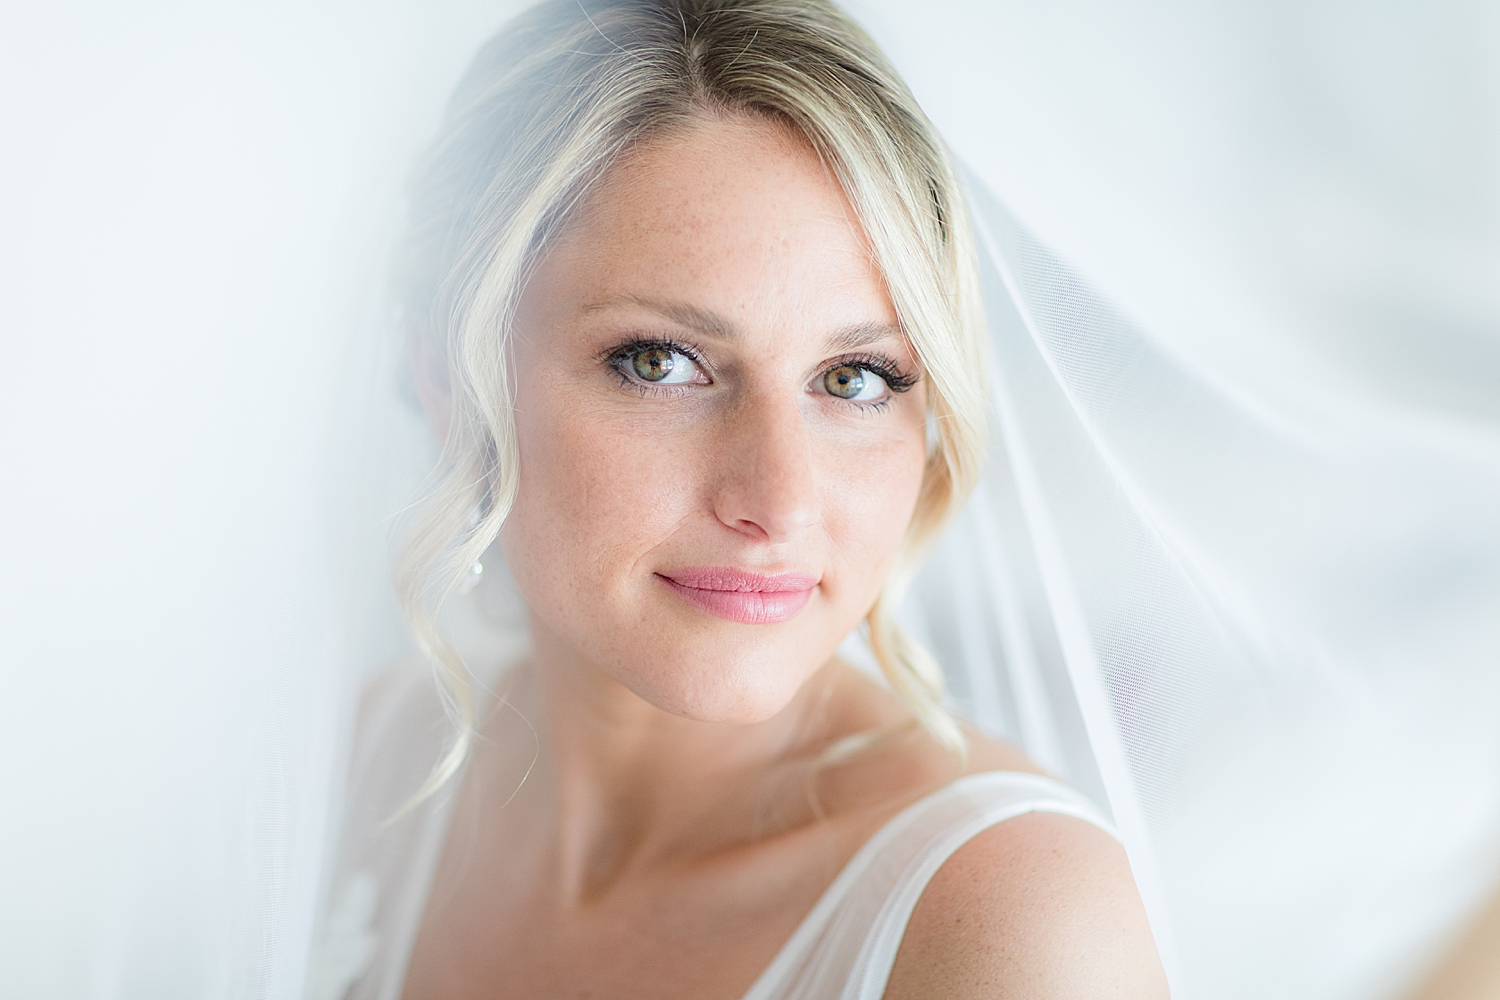 bridal portrait in natural light at the Reeds by jacnjules